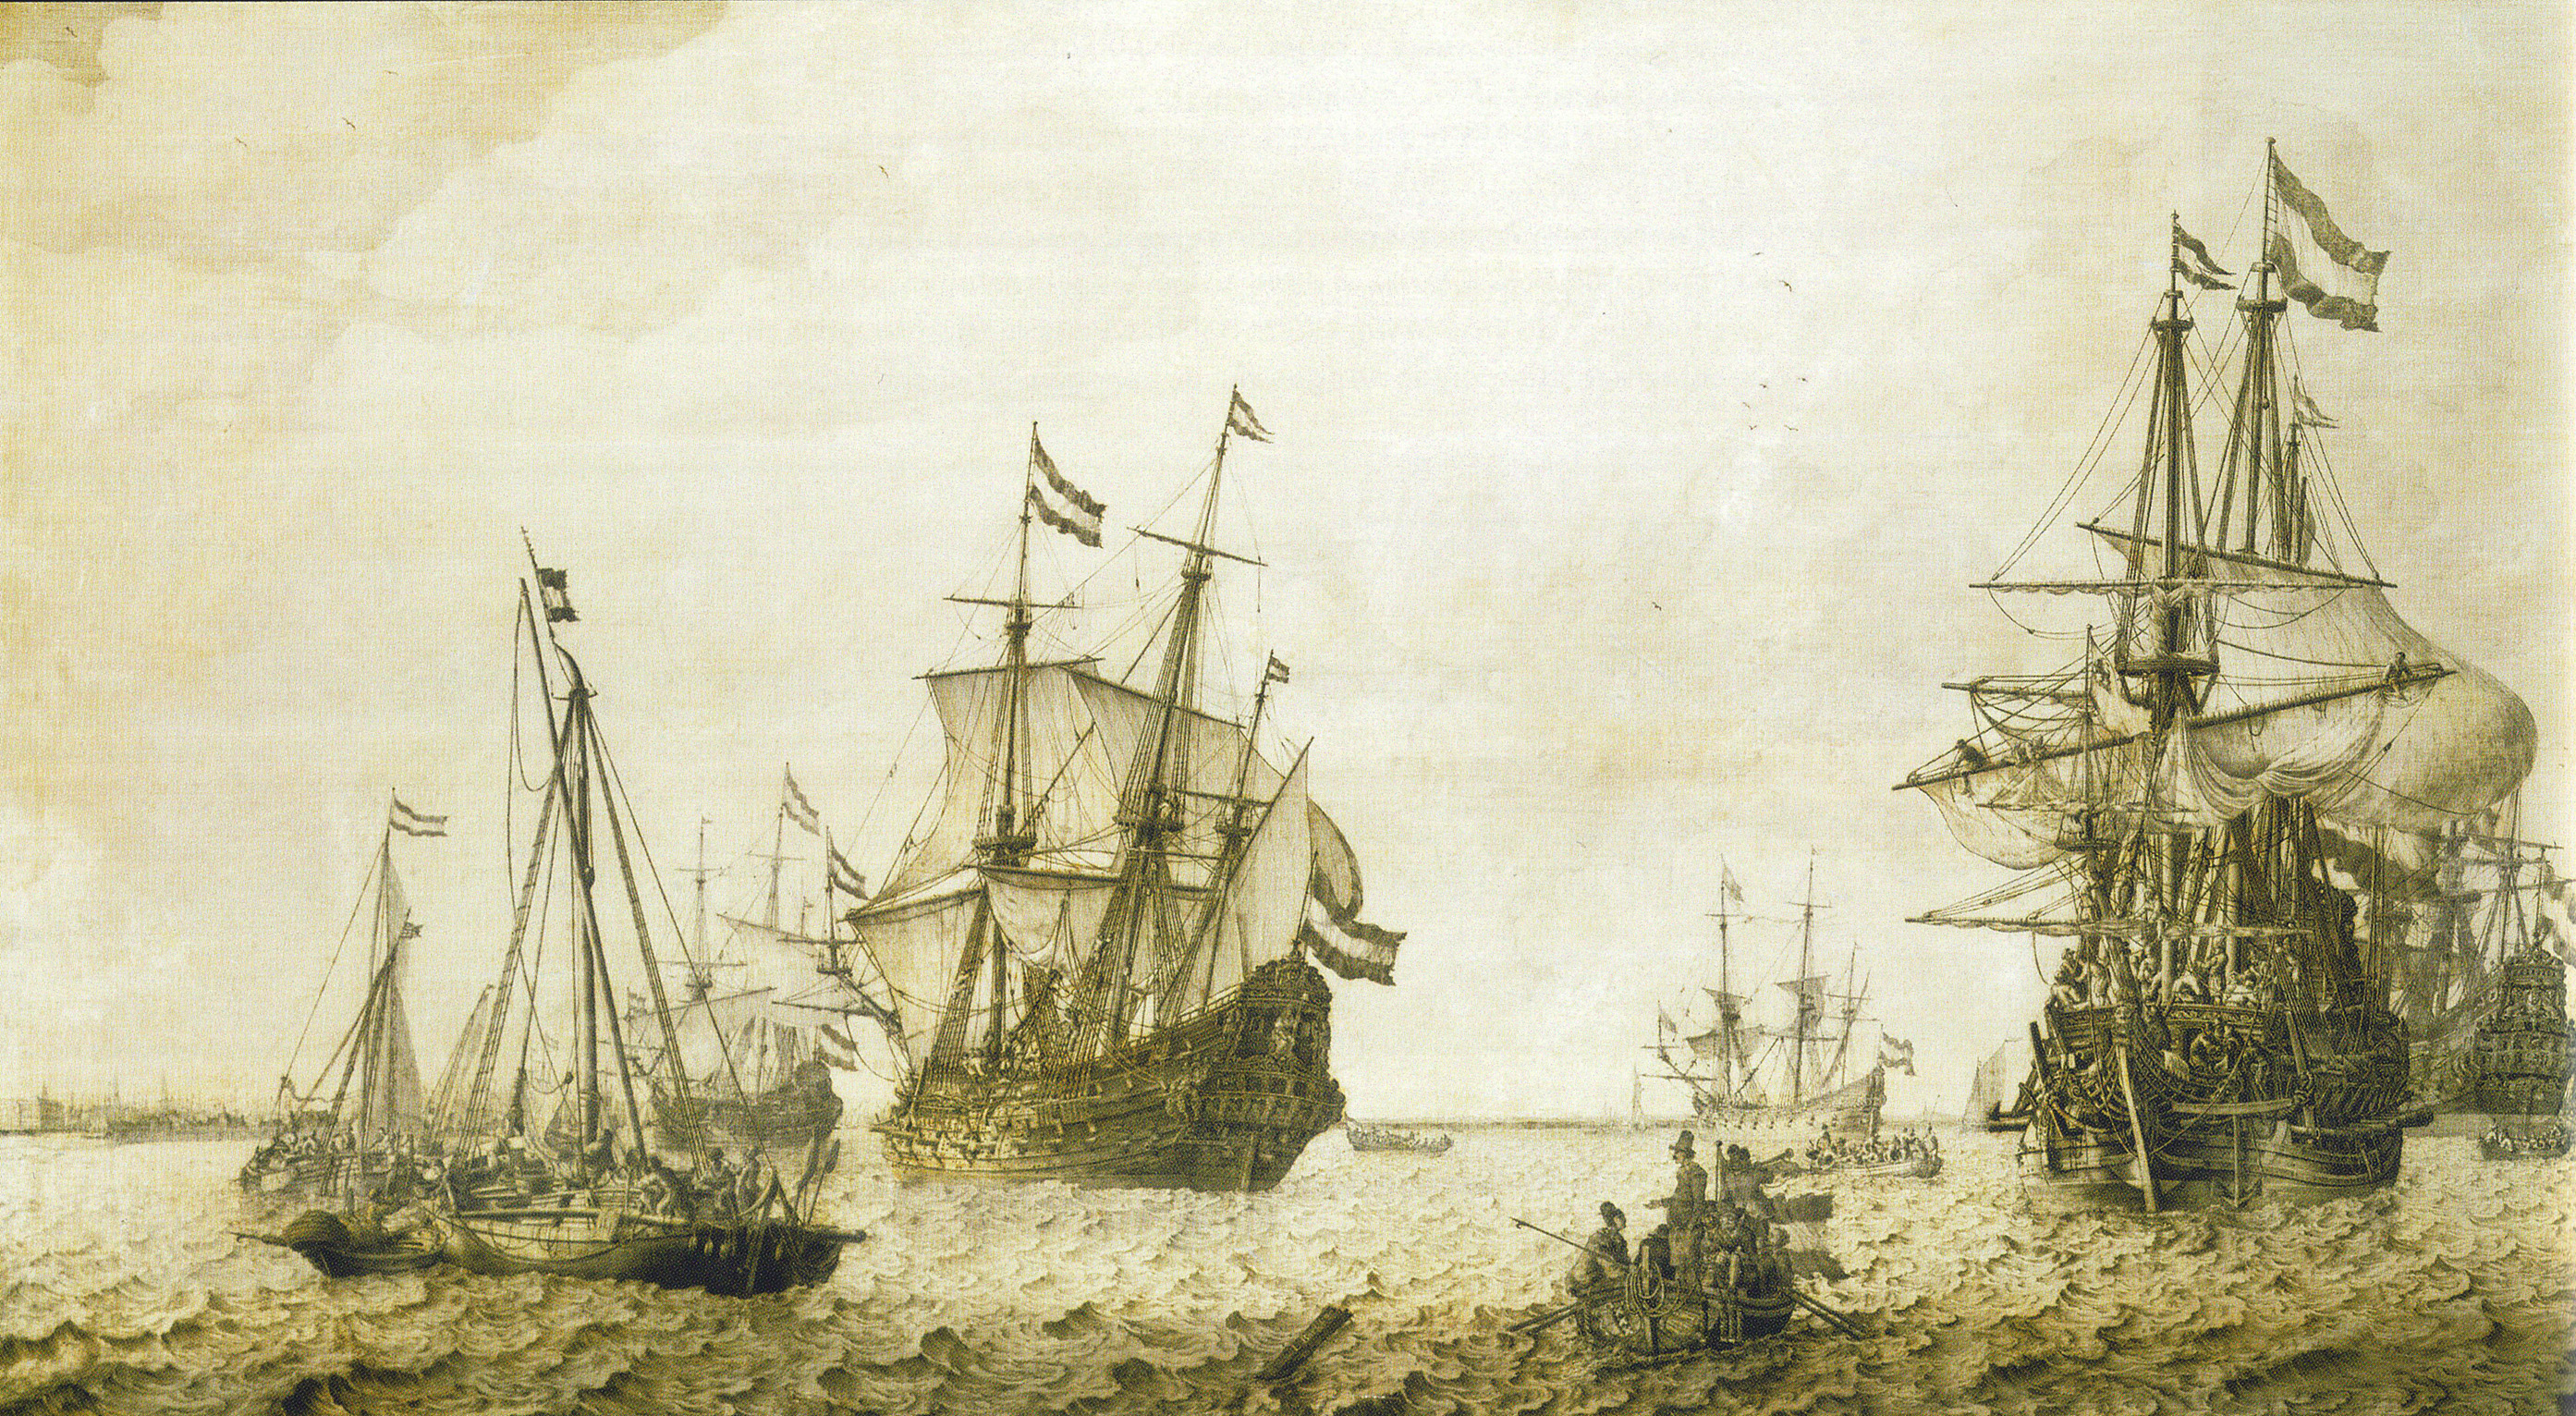 History of the Sailing Warship in the Marine Art: